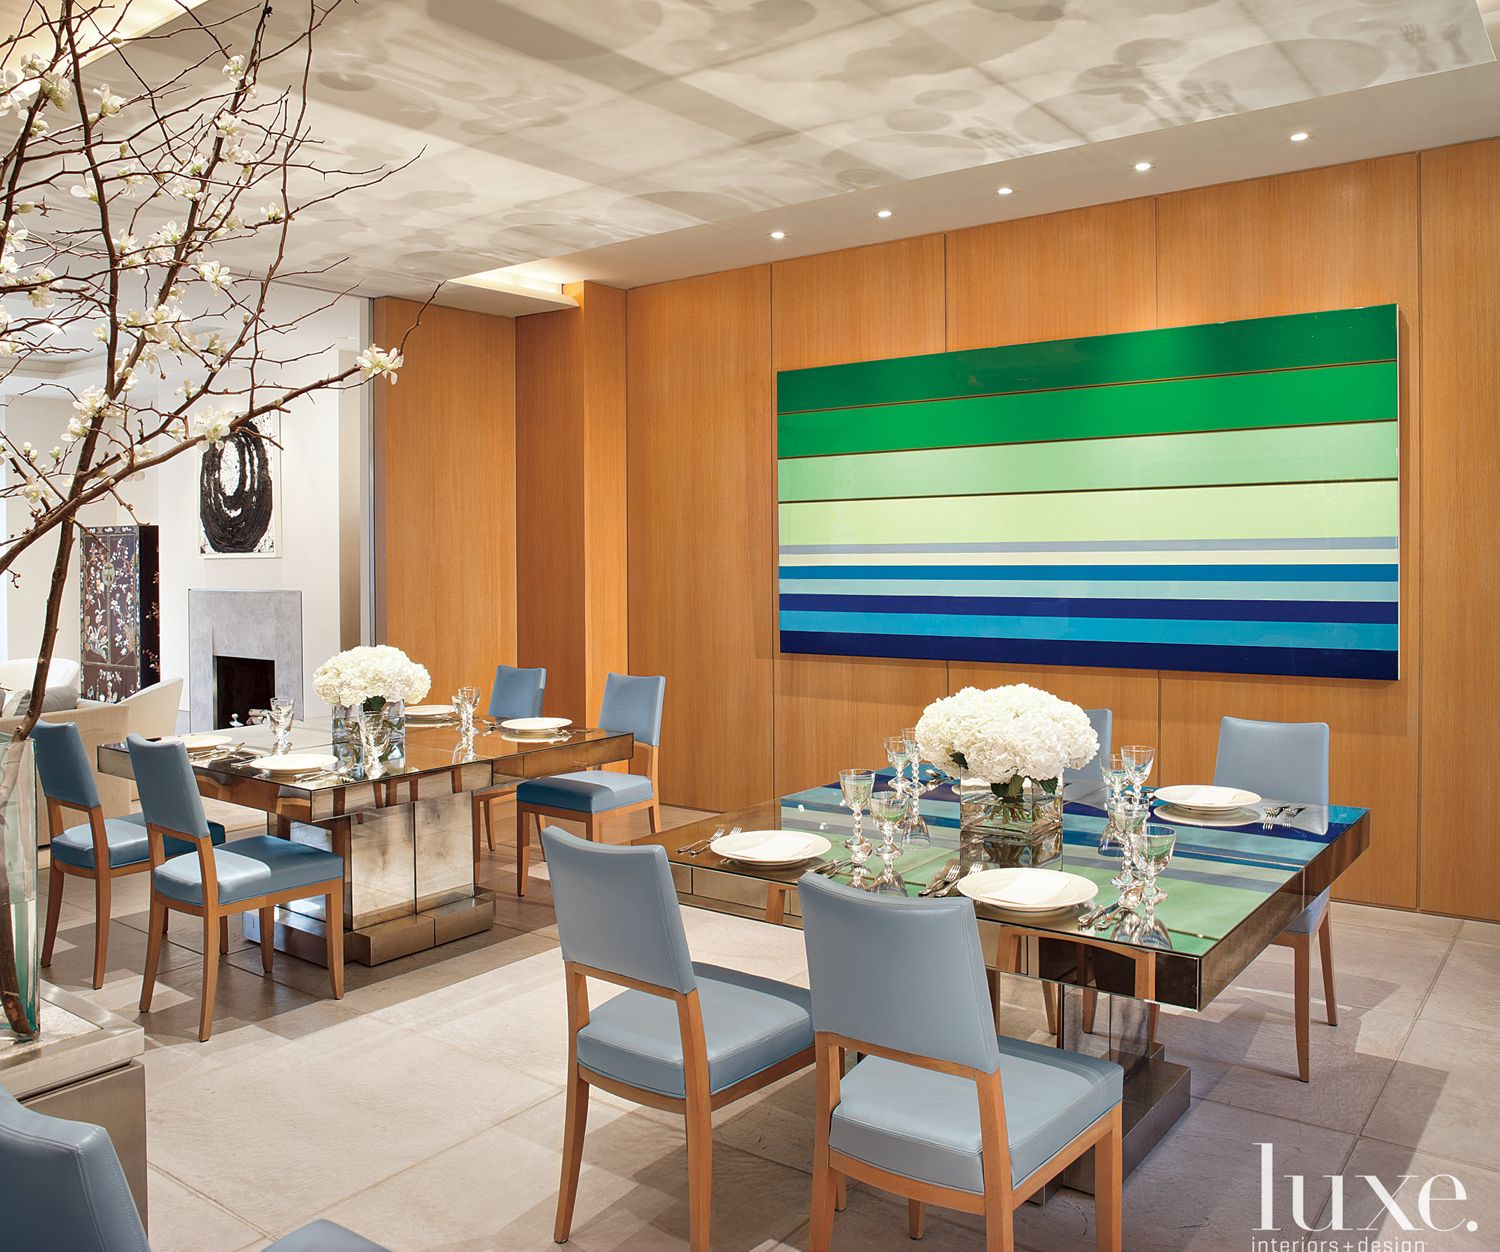 Modern Neutral Dining Room with Blue and Green Accents